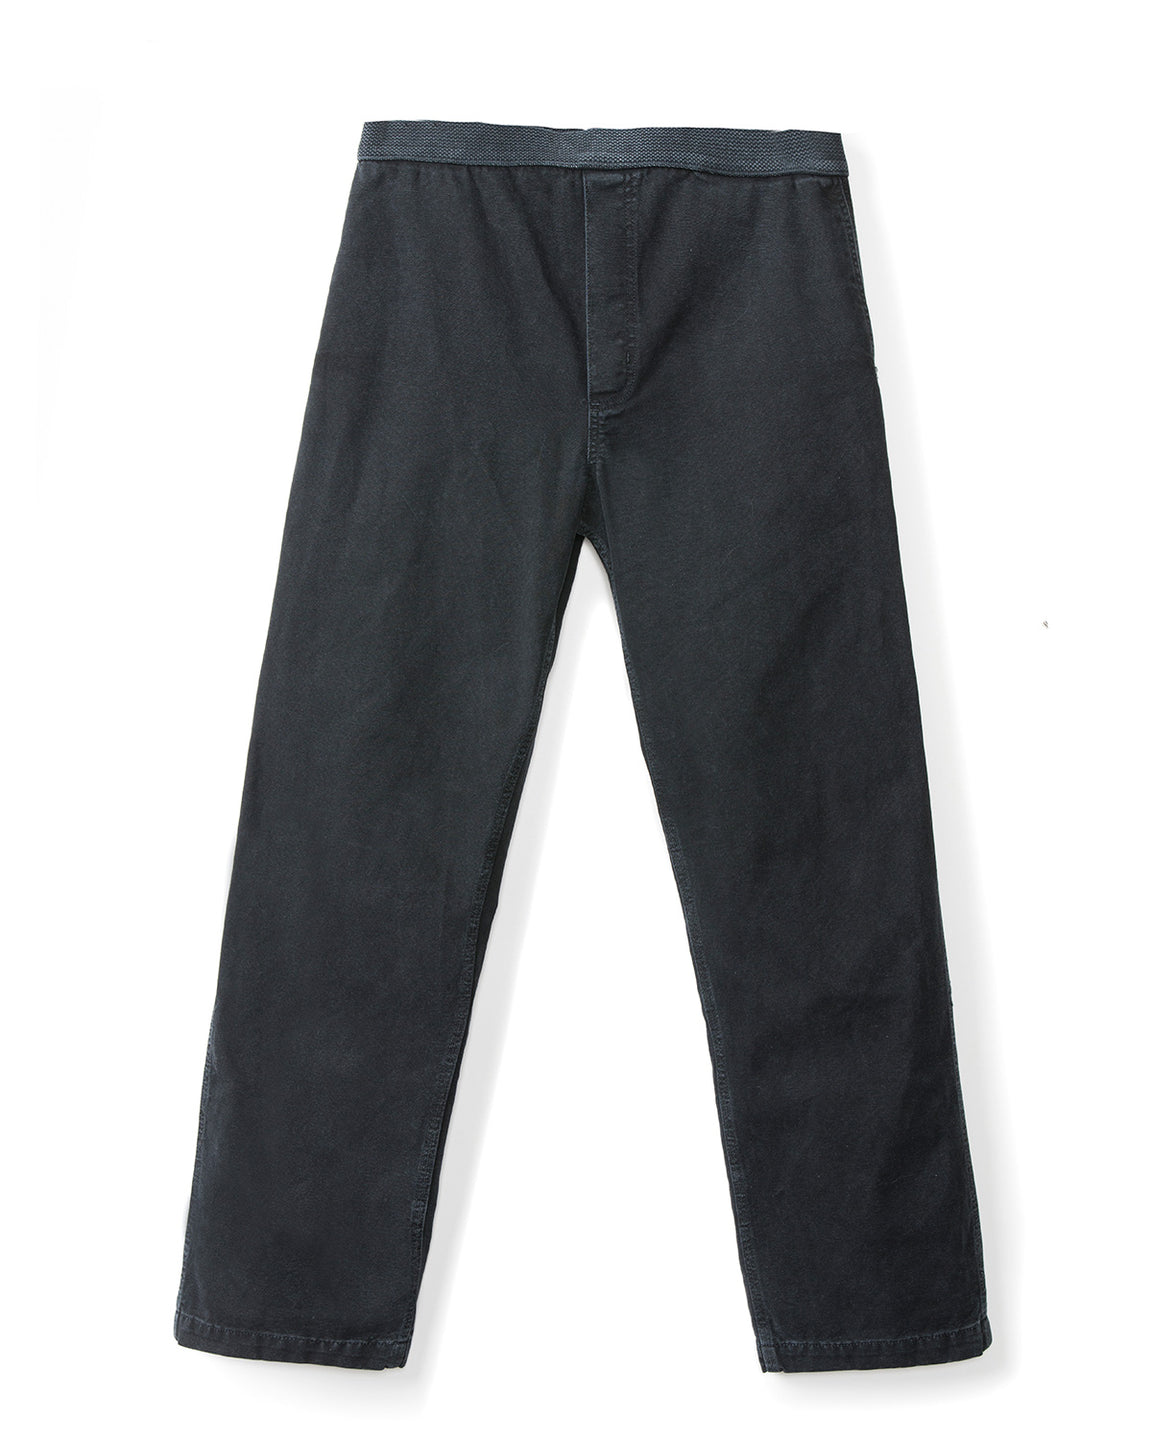 Hard/Software Velcro Carpenter Pant - Washed Black - Brain Dead